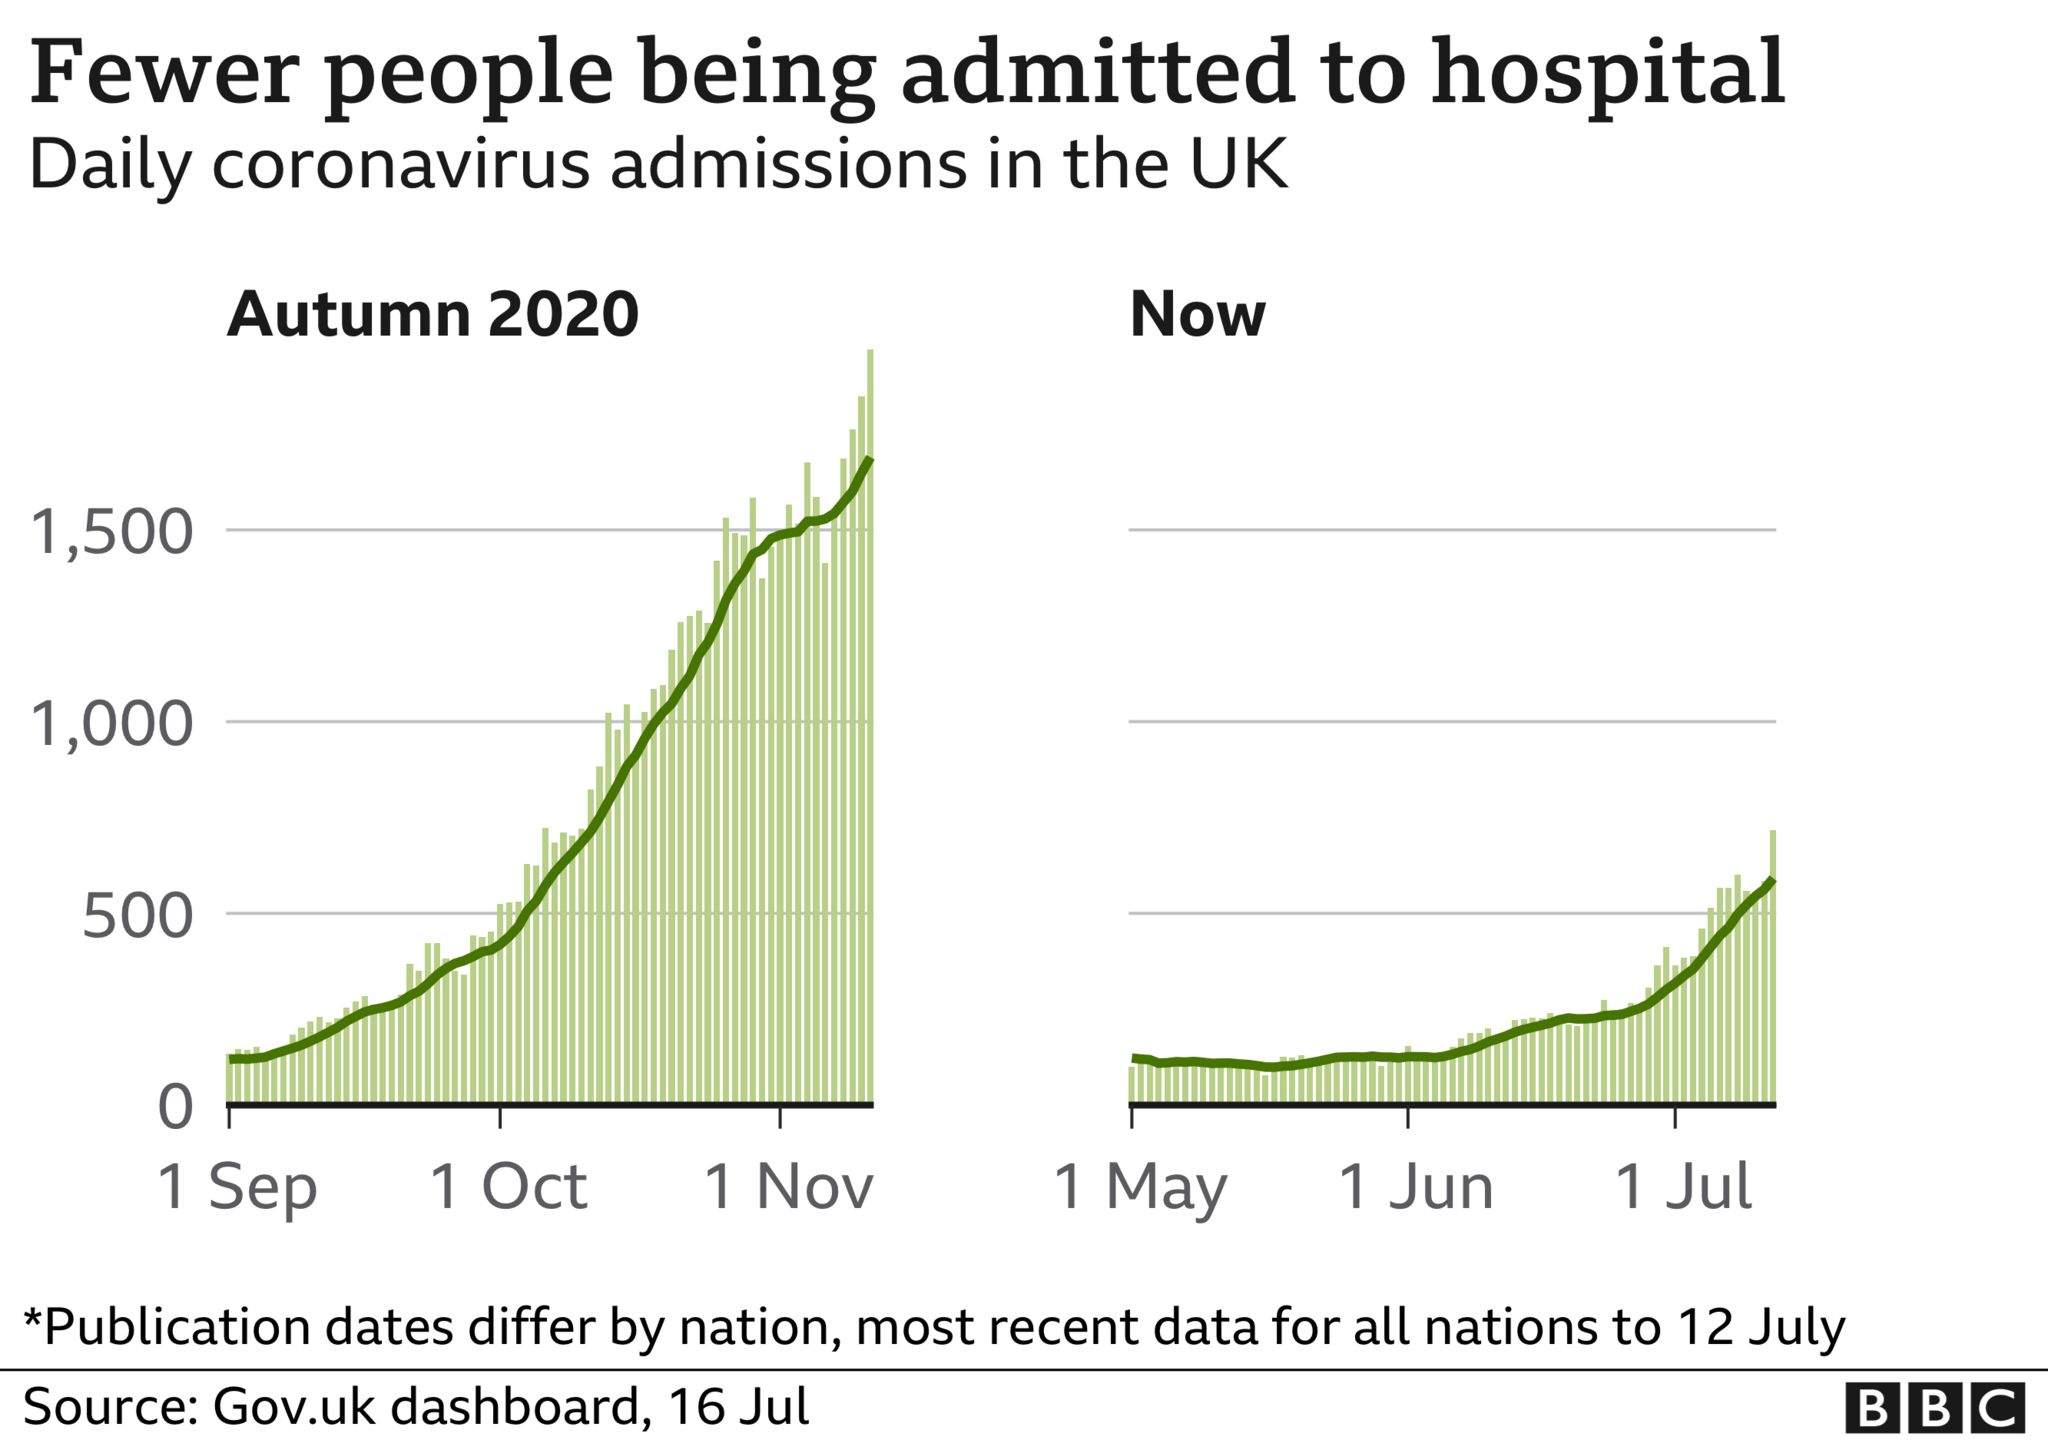 Number of coronavirus patients admitted to hospital compared to autumn 2020